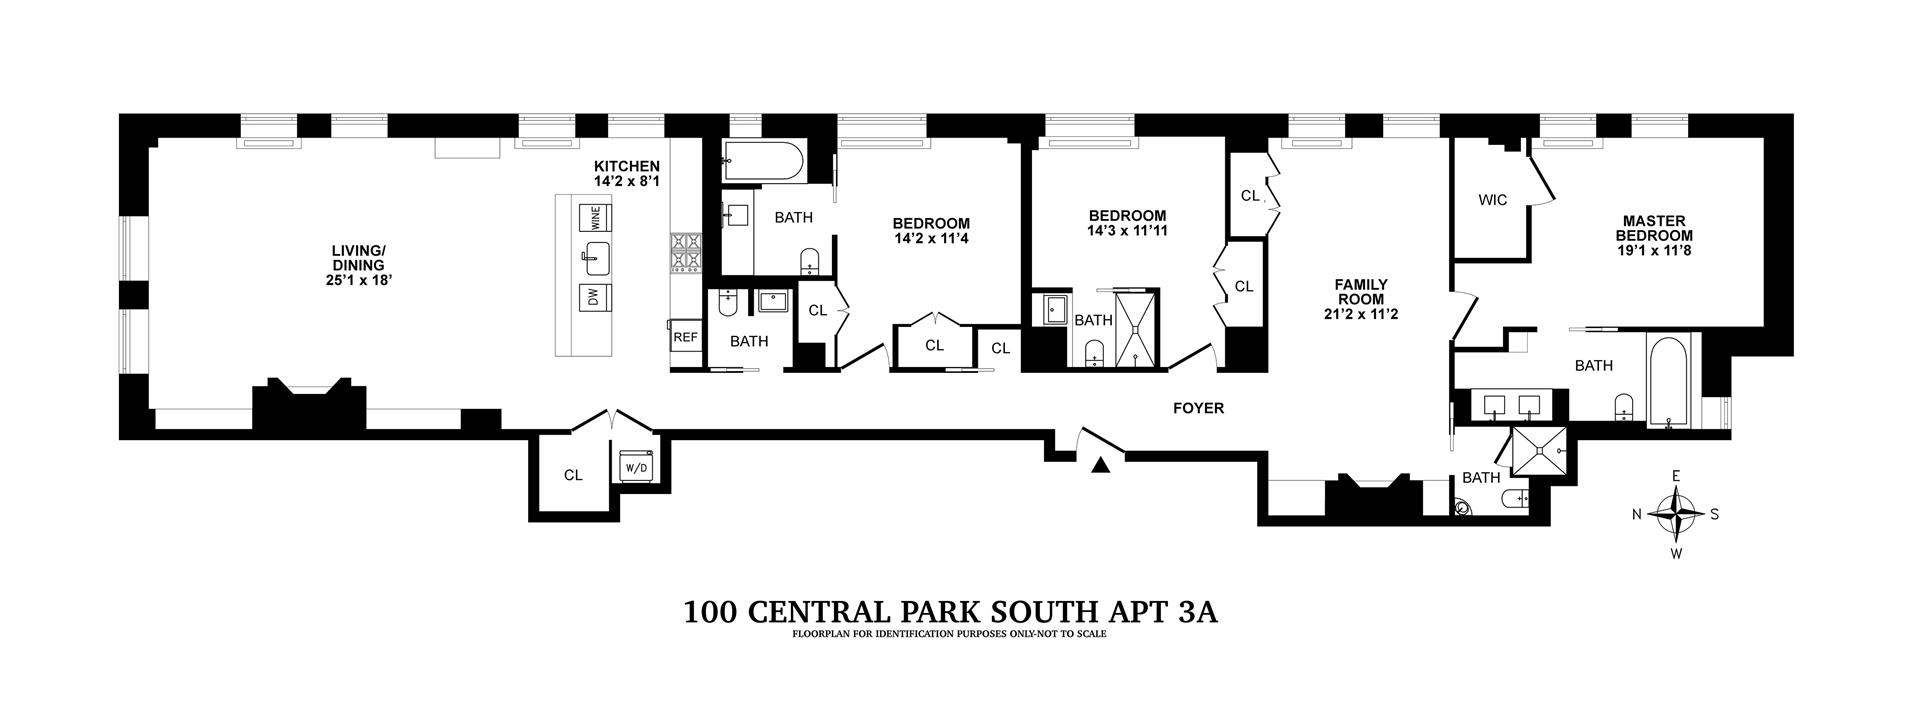 Floor plan of 100 Central Park South, 3A - Central Park South, New York